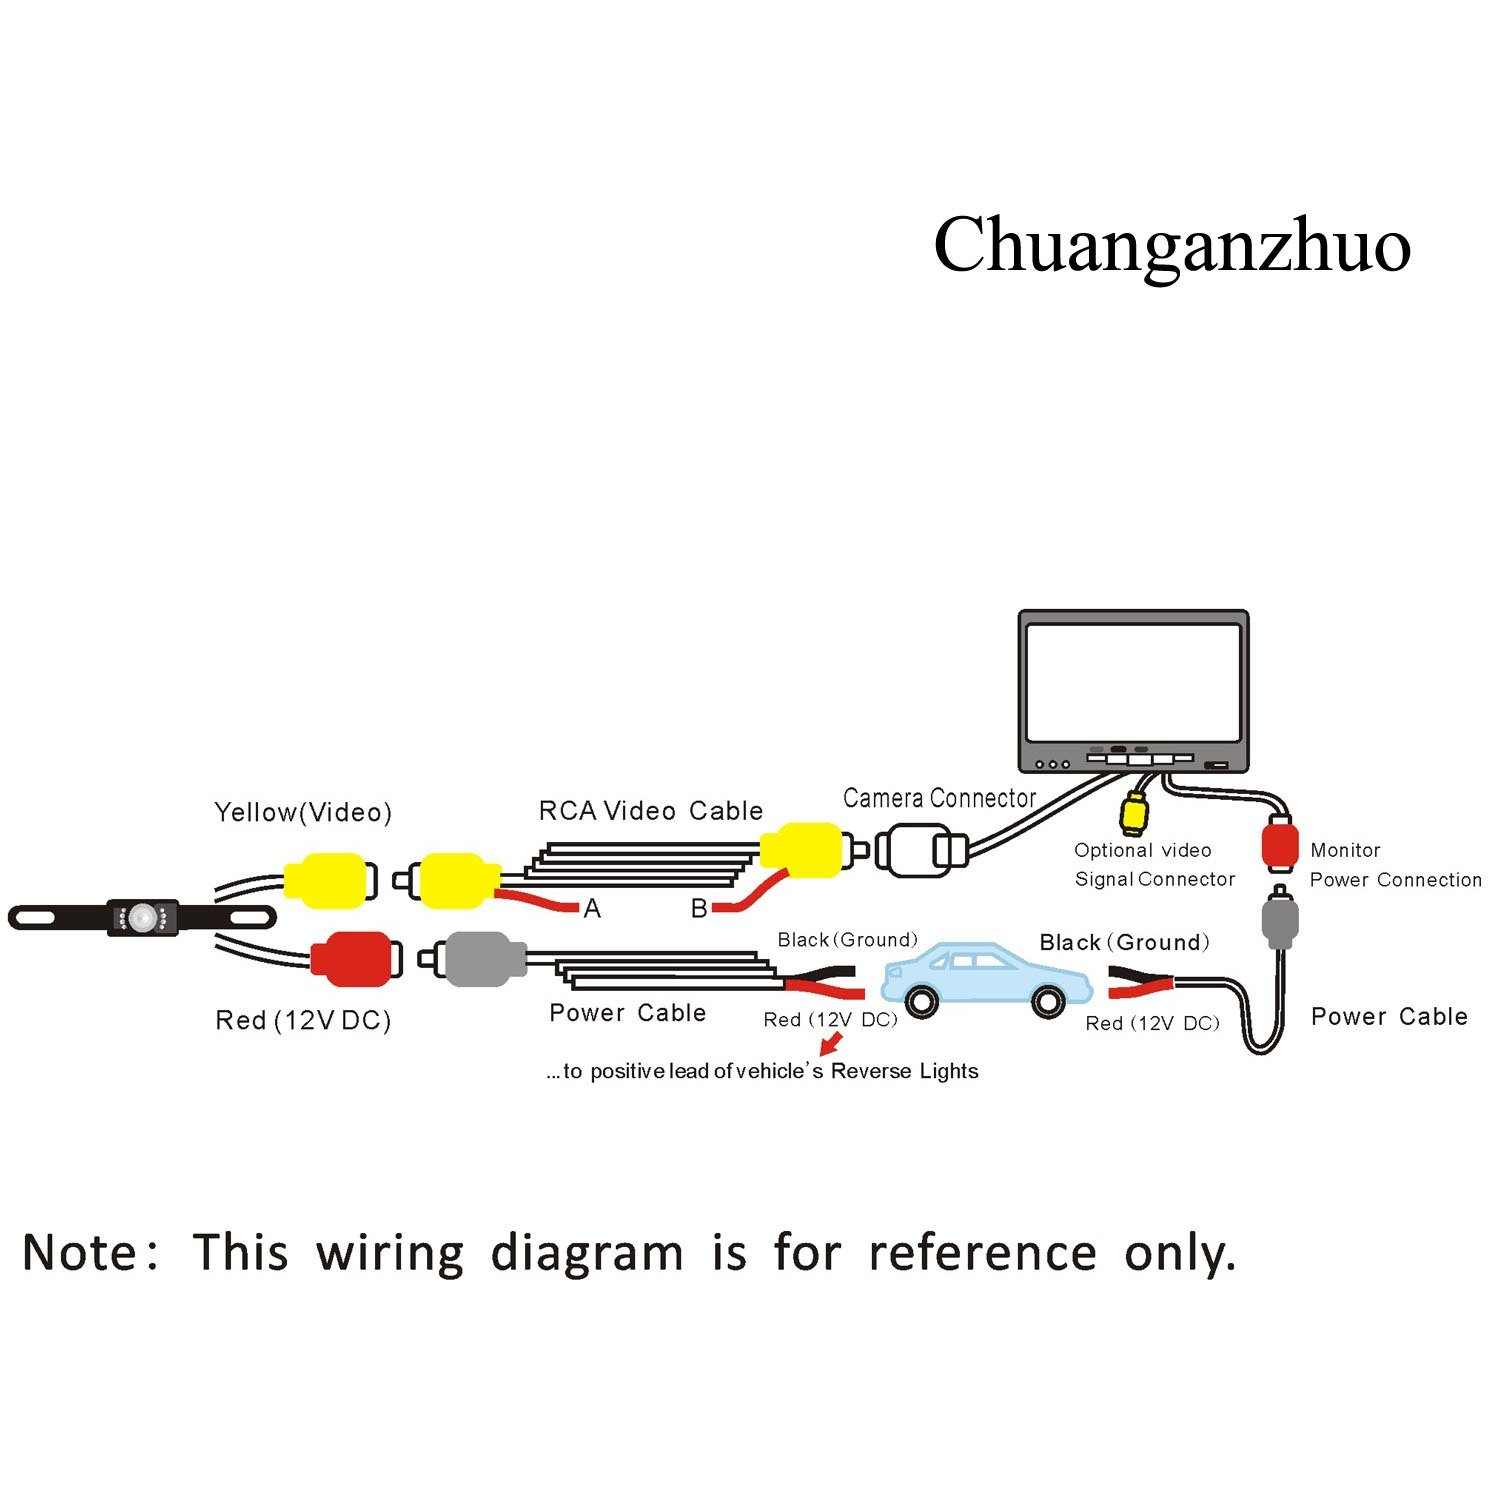 61eN9cMJzuL._SL1500_ amazon com backup camera and monitor kit, chuanganzhuo license monitor wiring diagram for cat 320l excavator at couponss.co